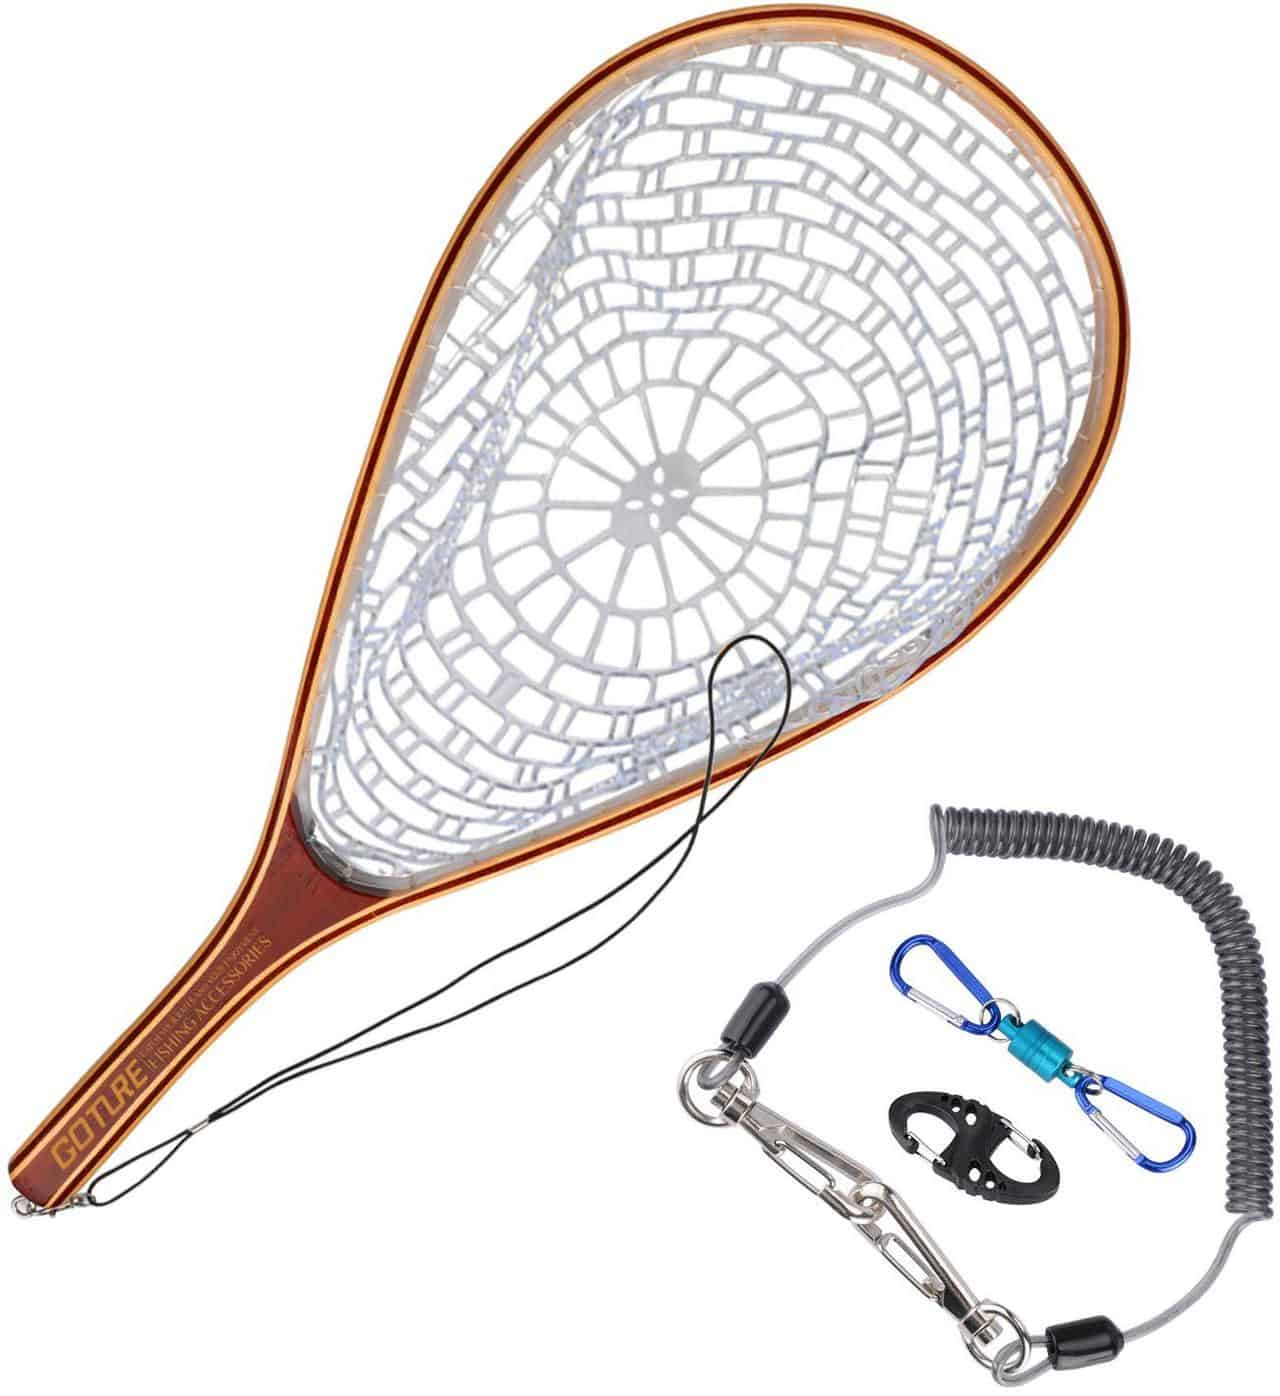 Fly Fishing Net Catch by Goture